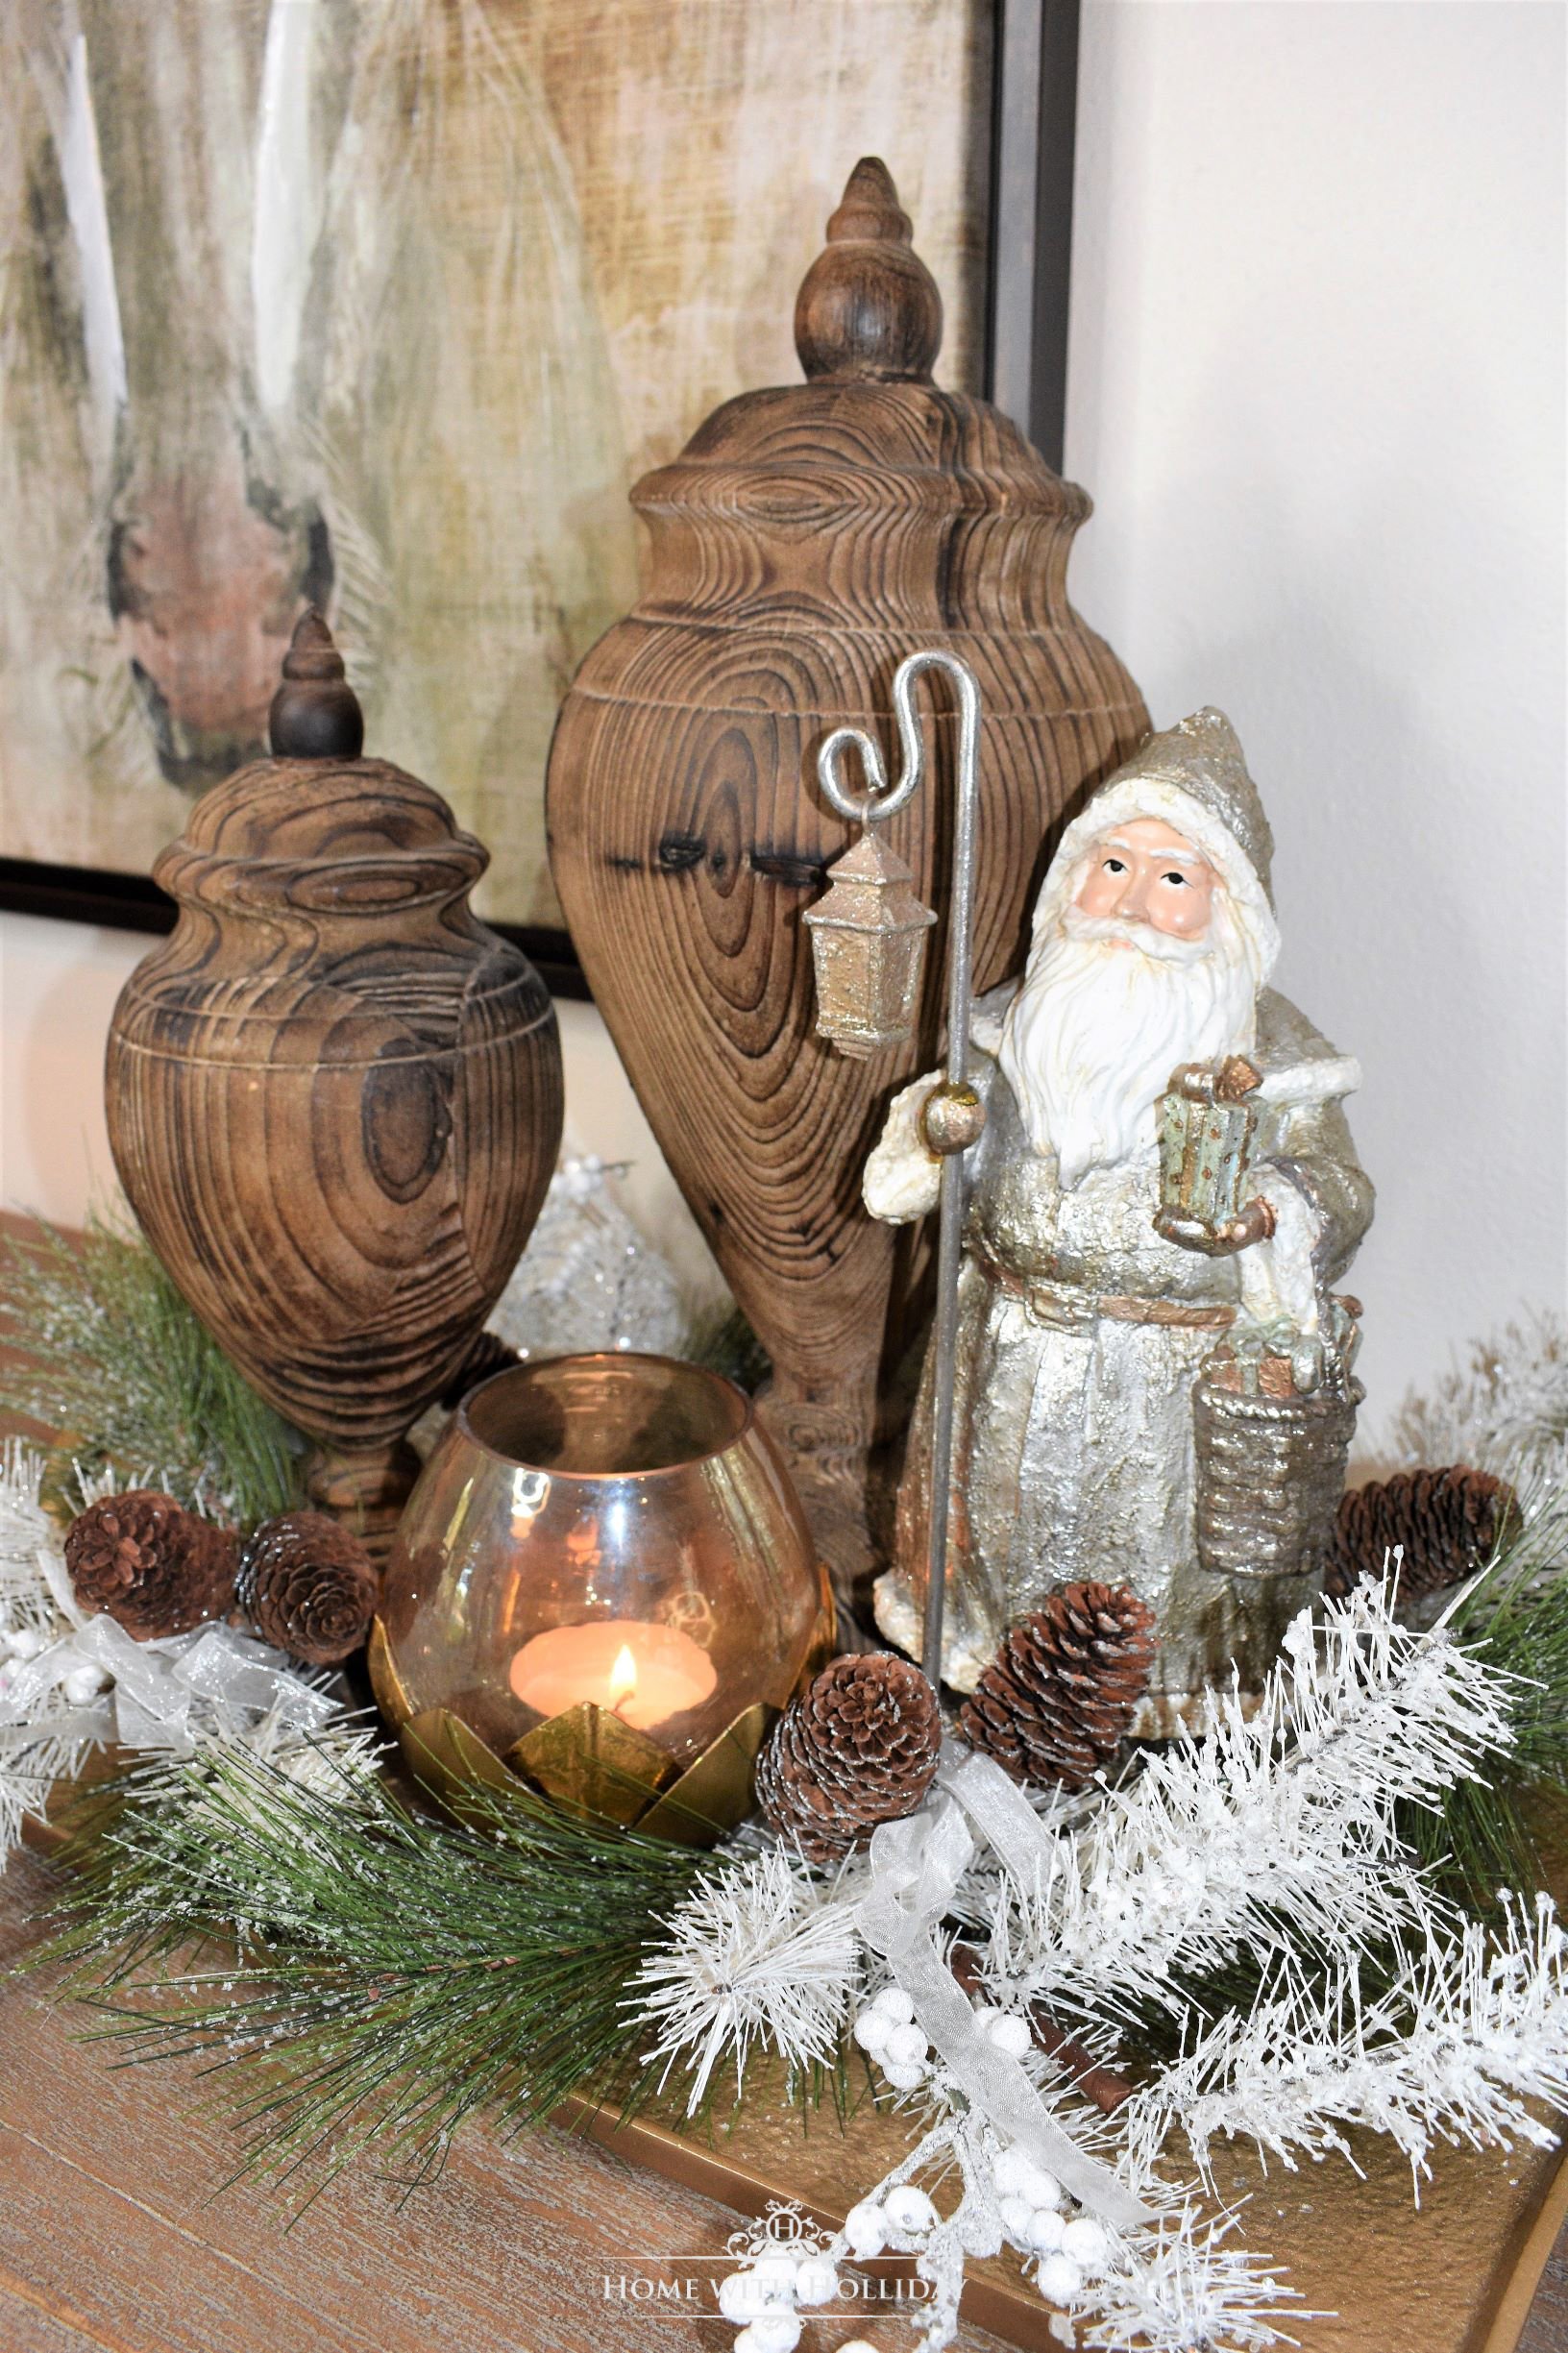 Decorating a Tray for Christmas 6 Ways - Winter Santa - Home with Holliday